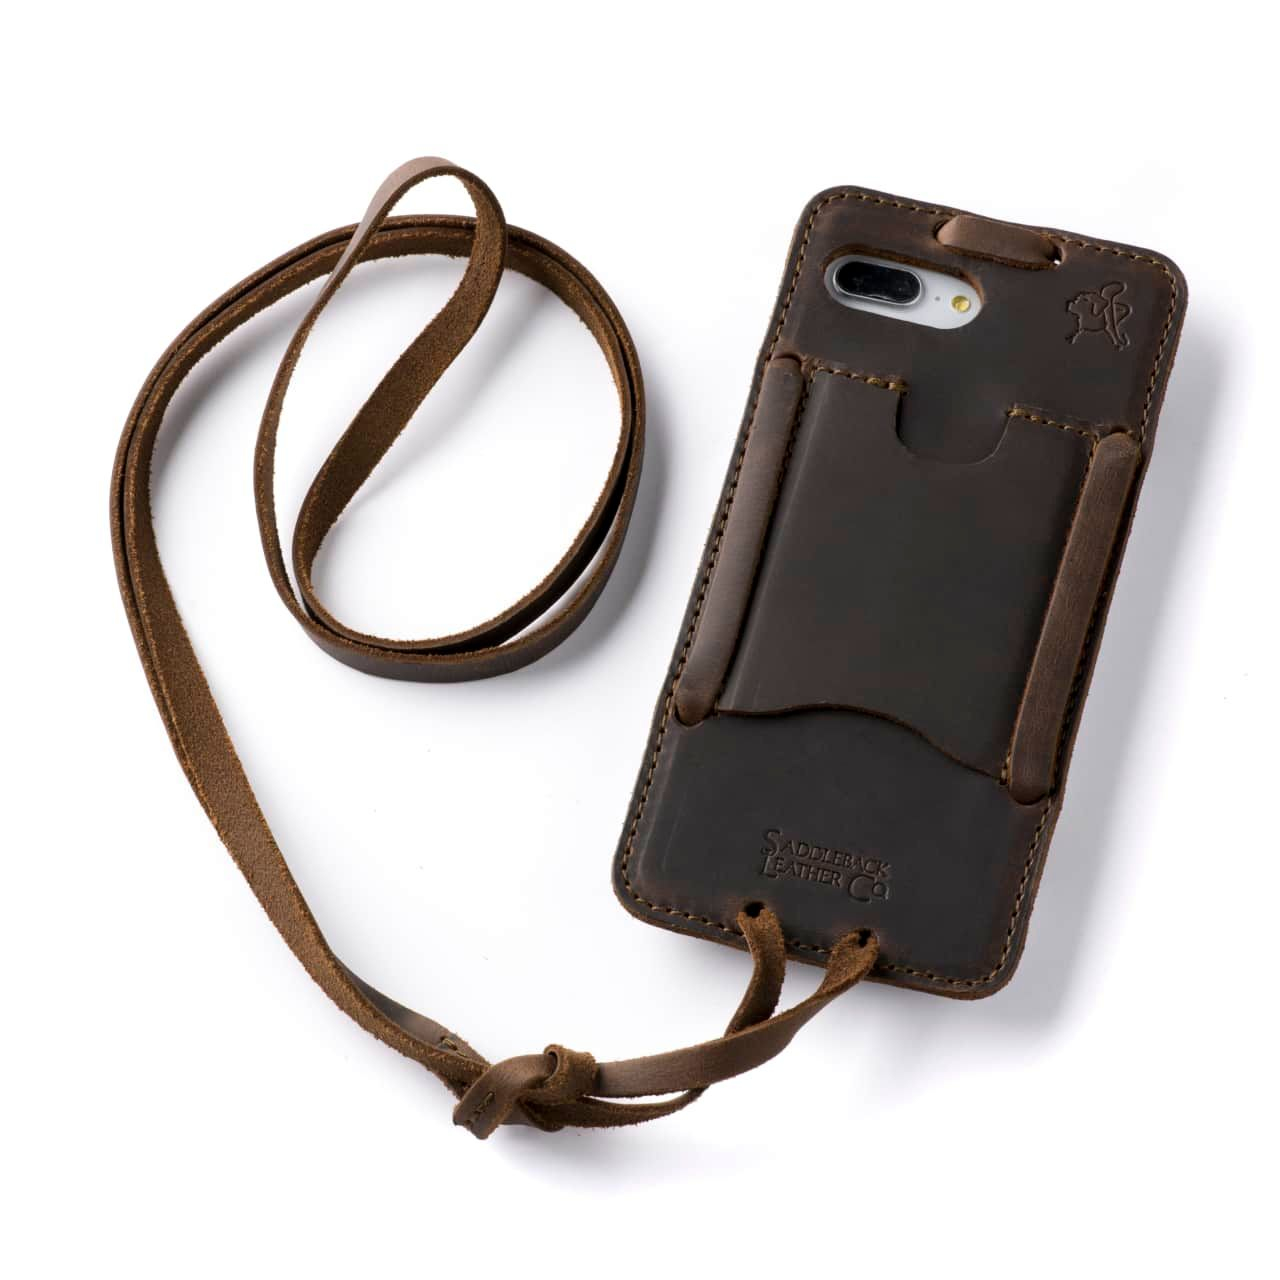 Leather iPhone 8+ Case in Color Dark Coffee Brown with the Lanyard attached back angle showing empty card slot